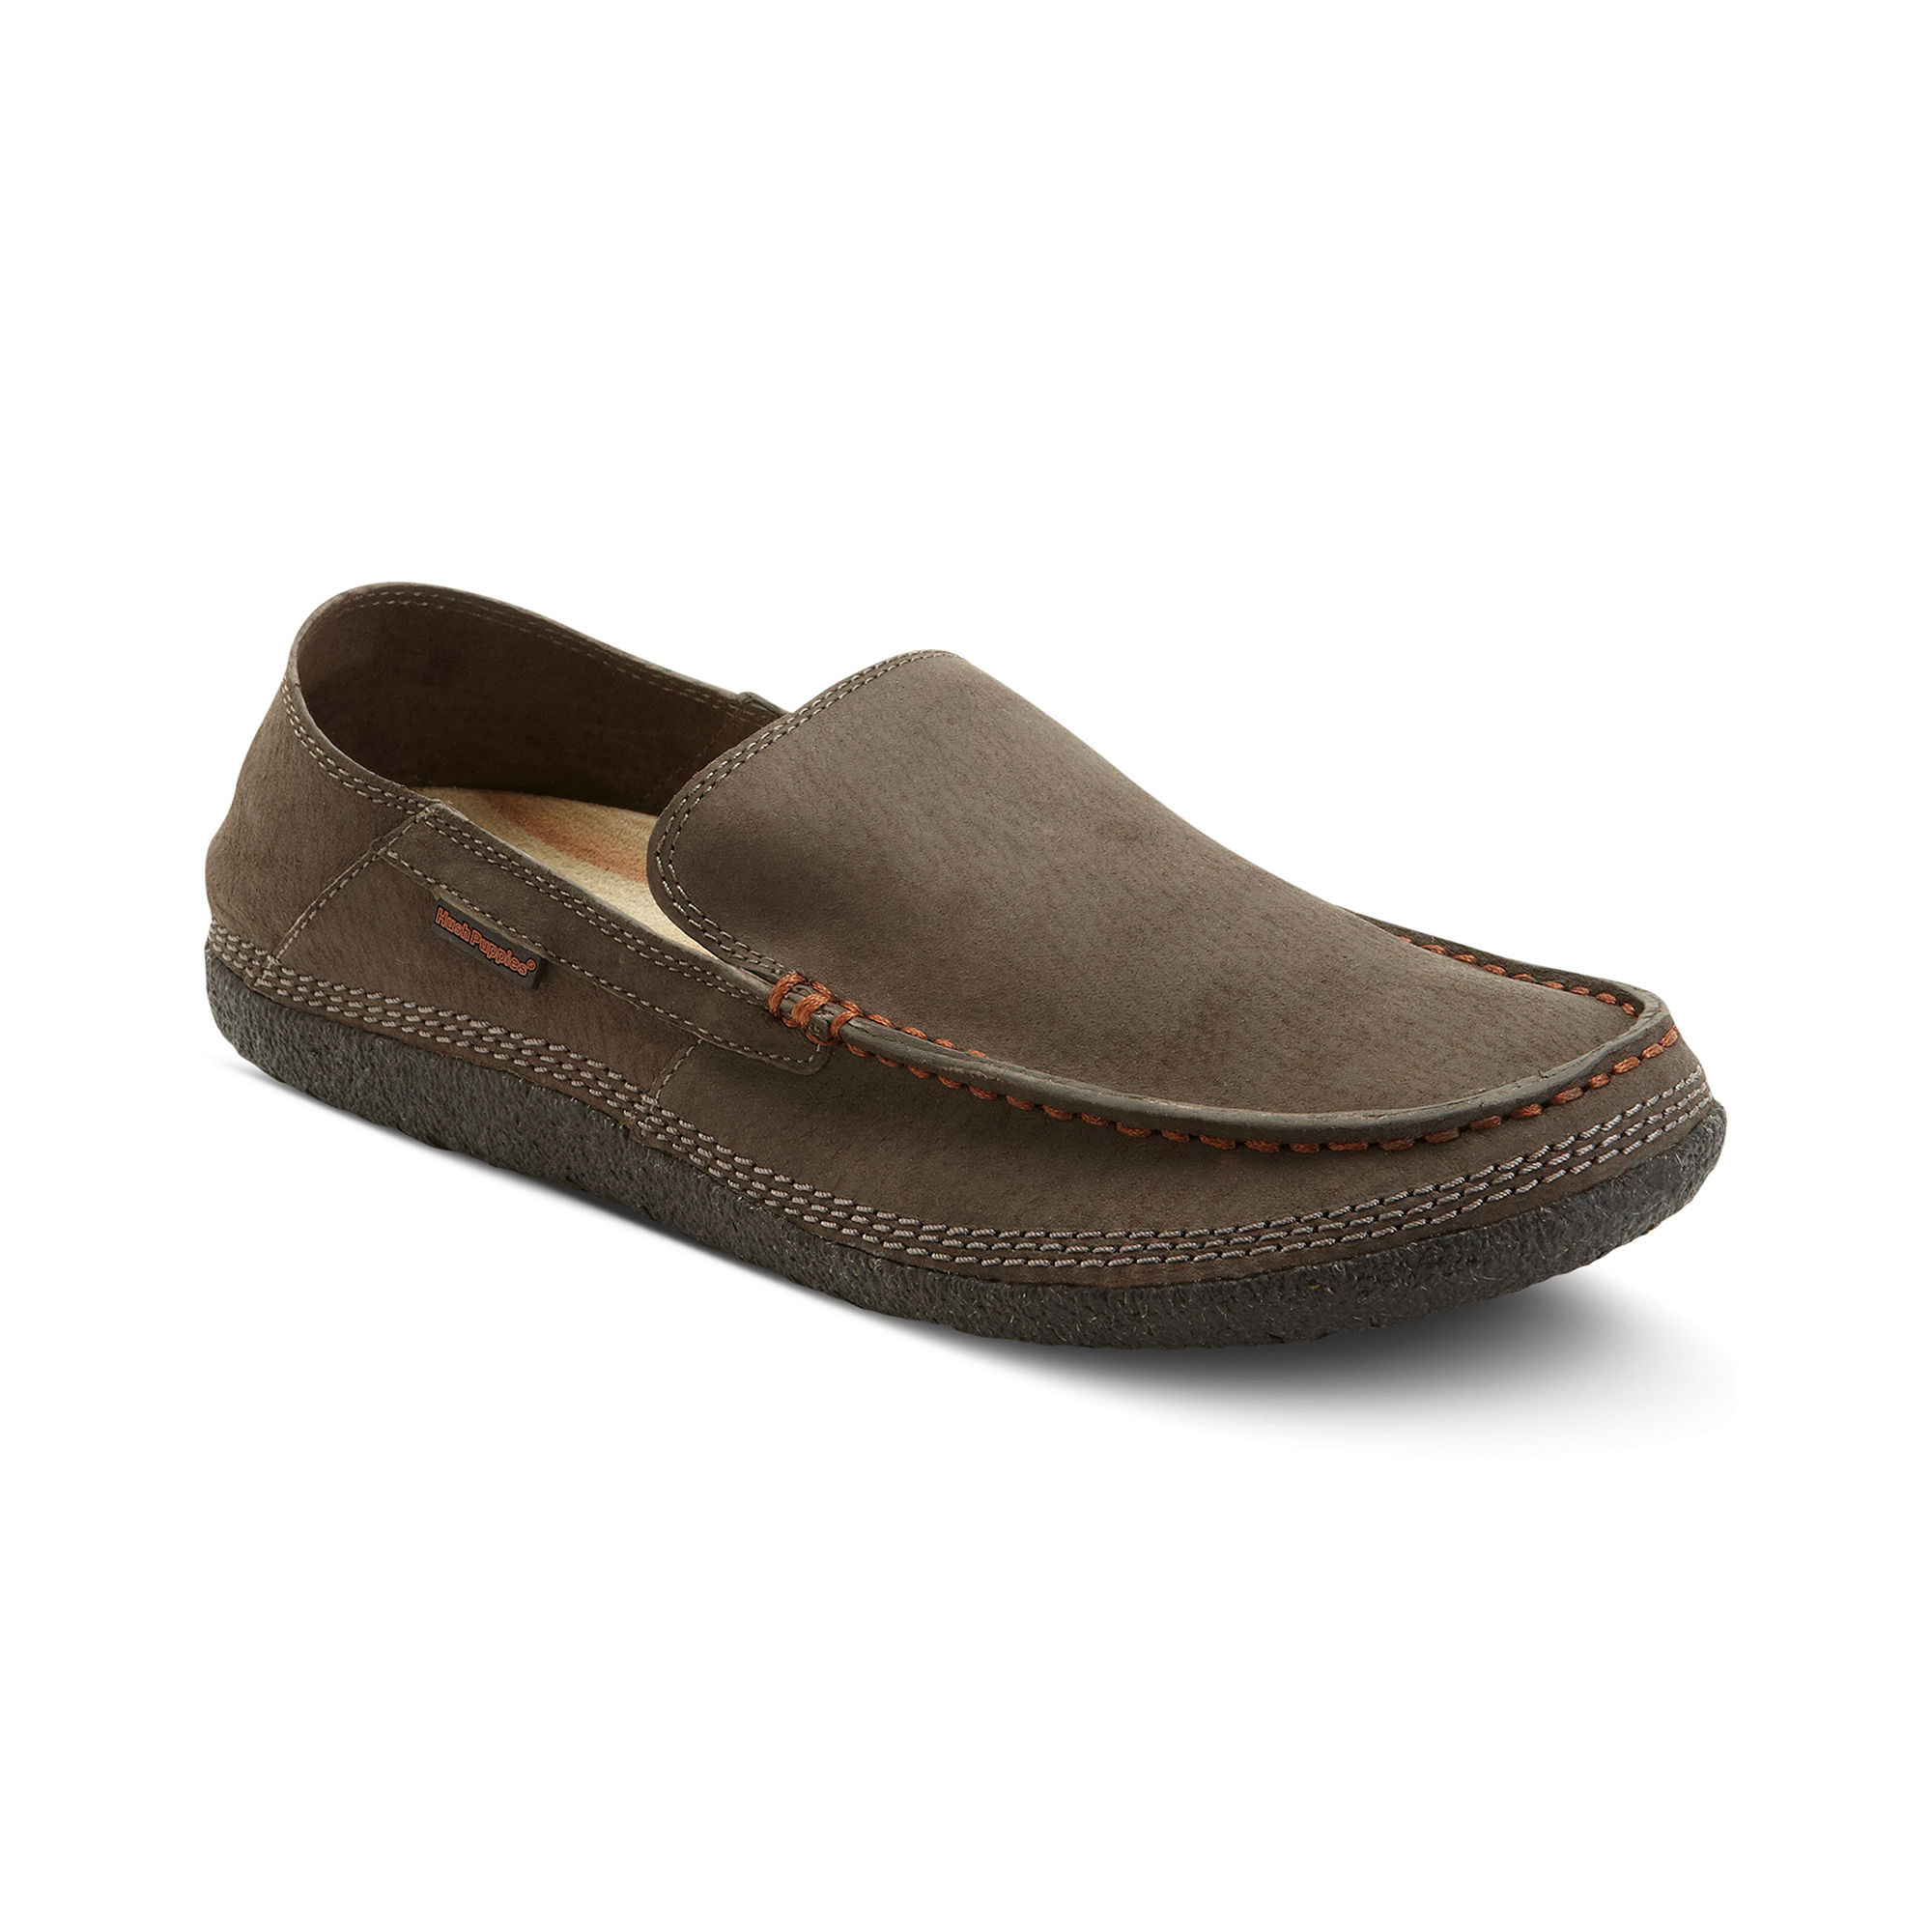 Hush Puppies Or Clarks Shoes